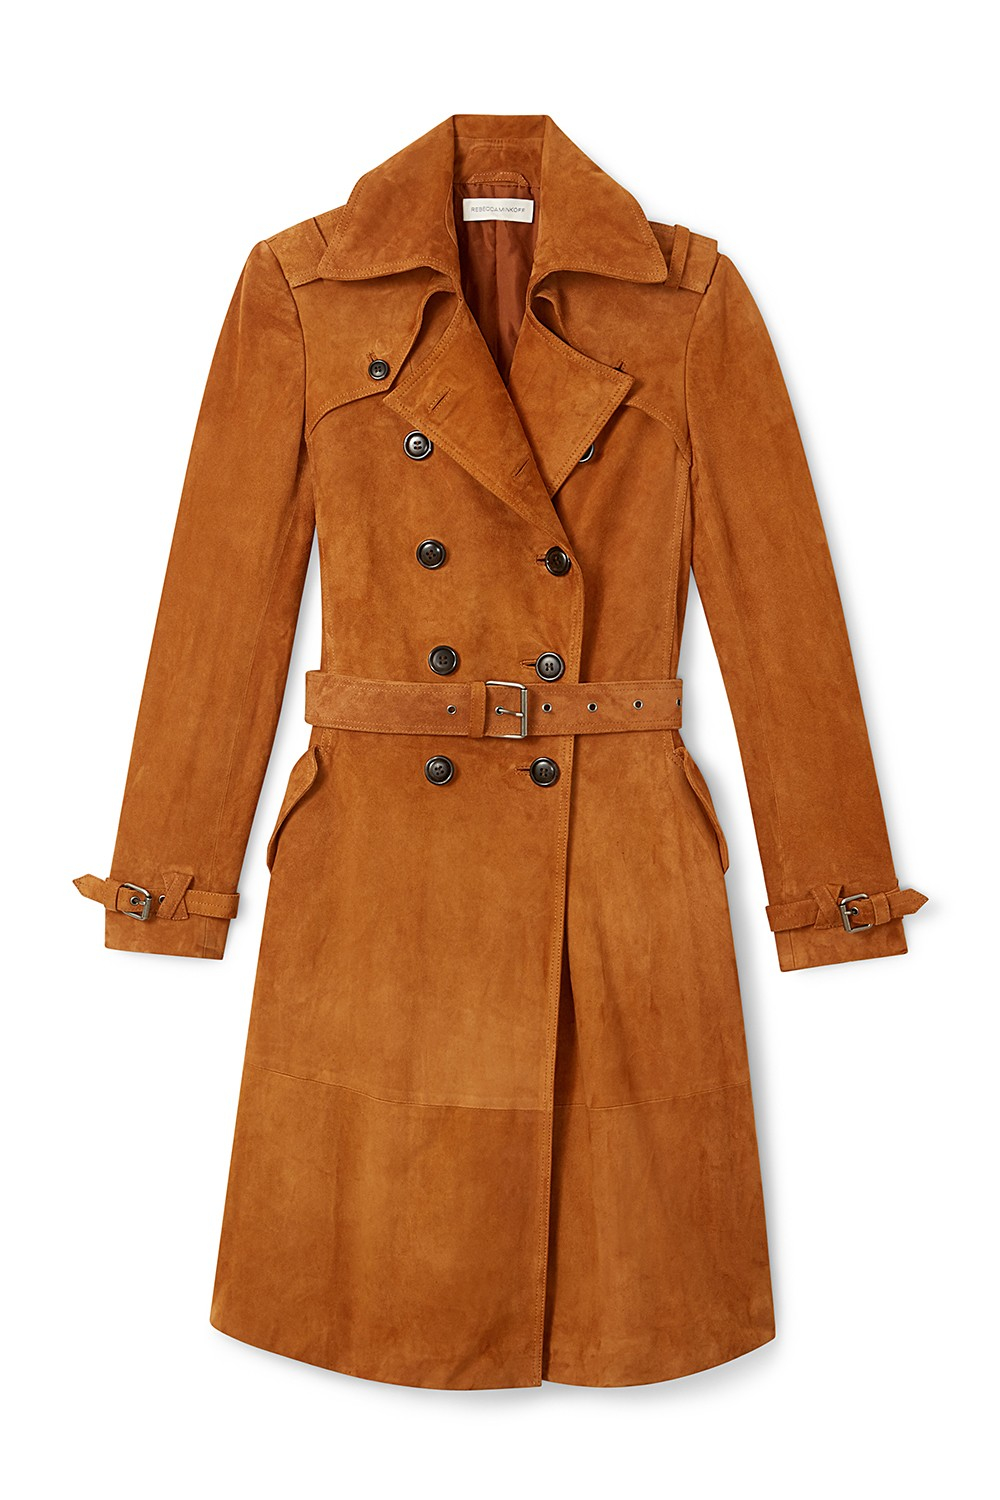 Rebecca Minkoff Amis Suede Trench , $898